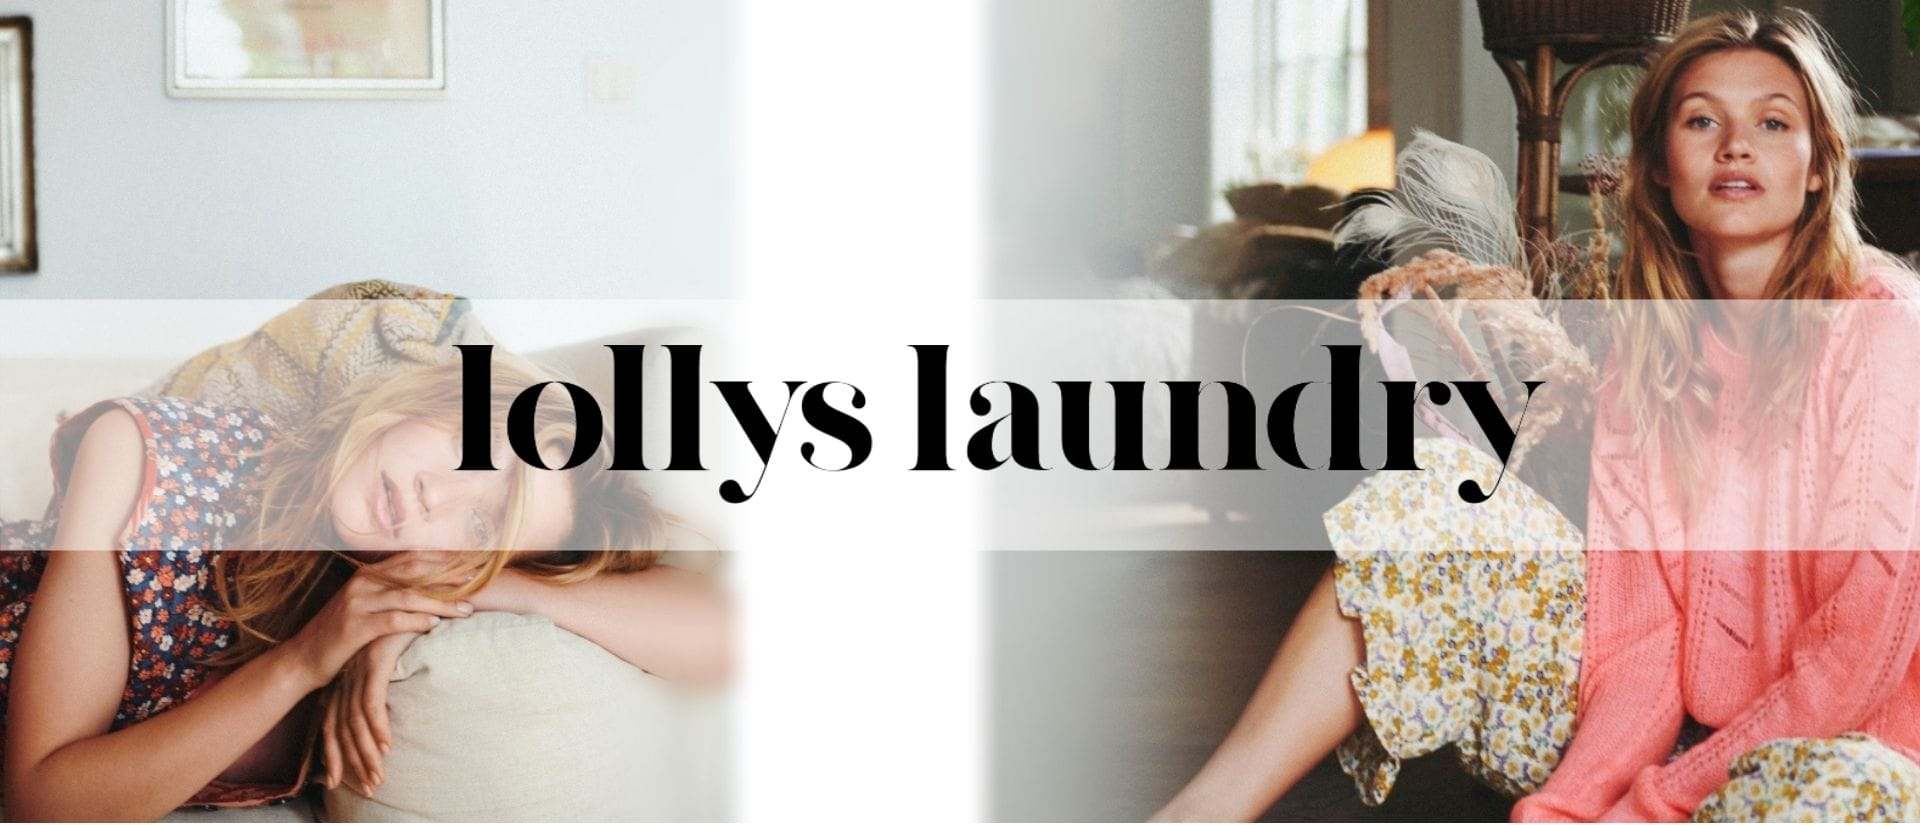 Lollys Laundry